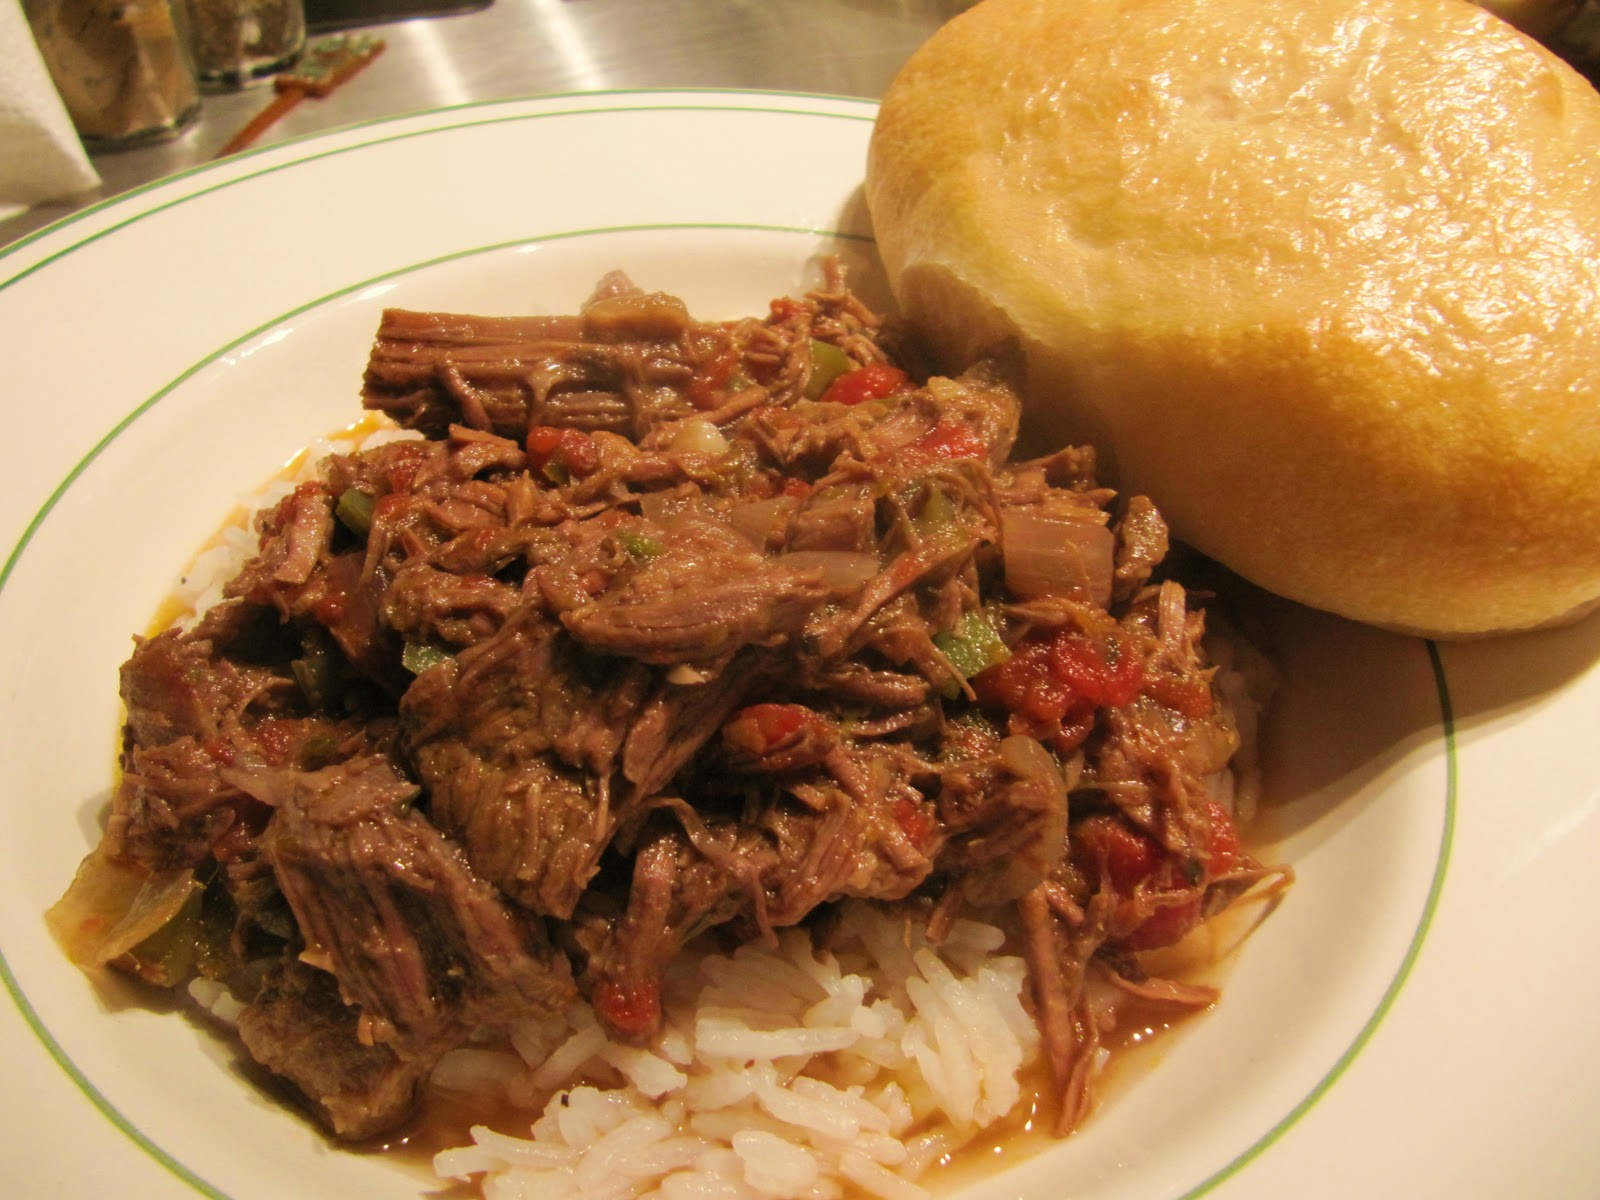 Ropa Vieja (Old clothes)